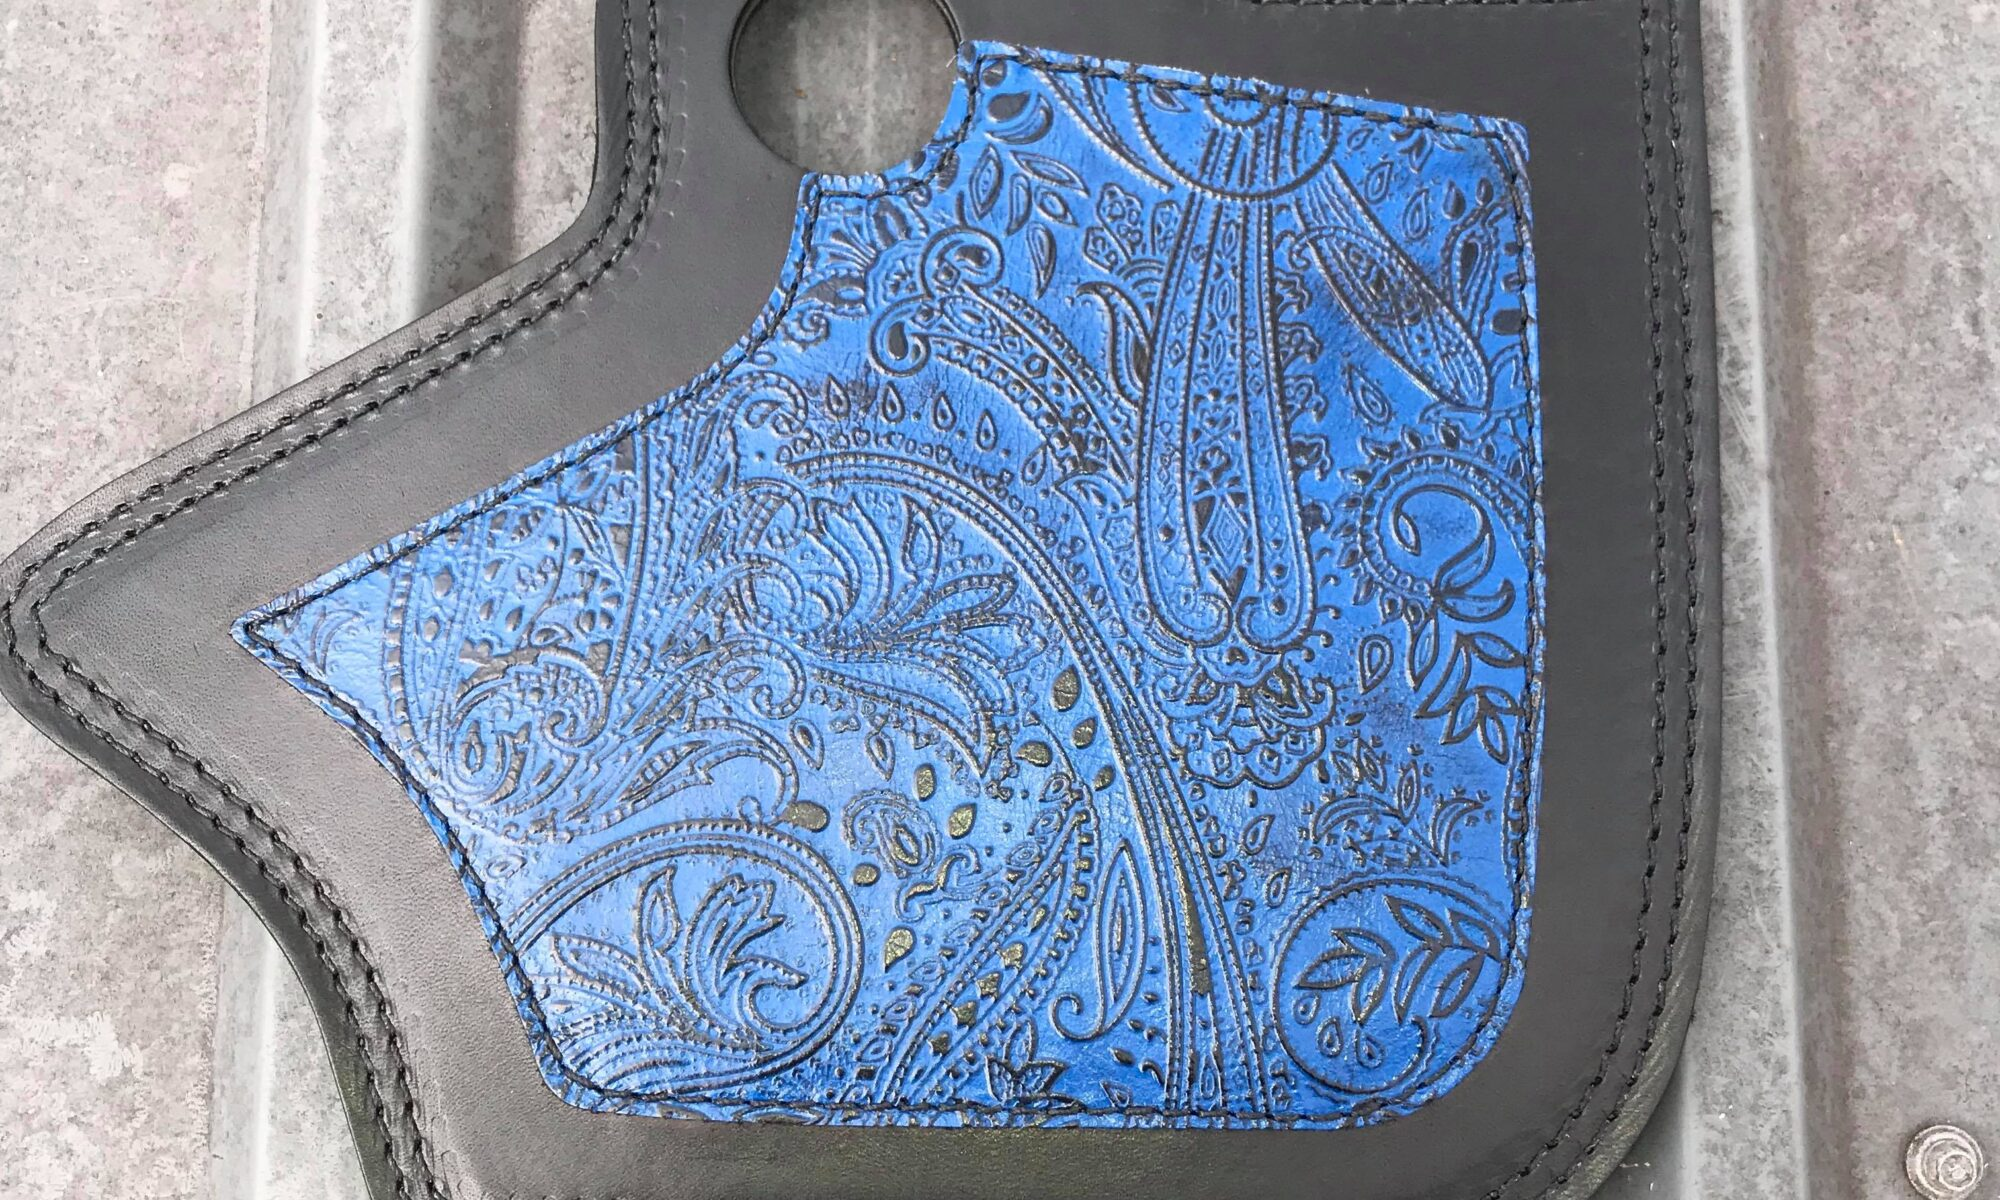 Indian heat shield with blue Leather and Lace overlay from Captain Itch